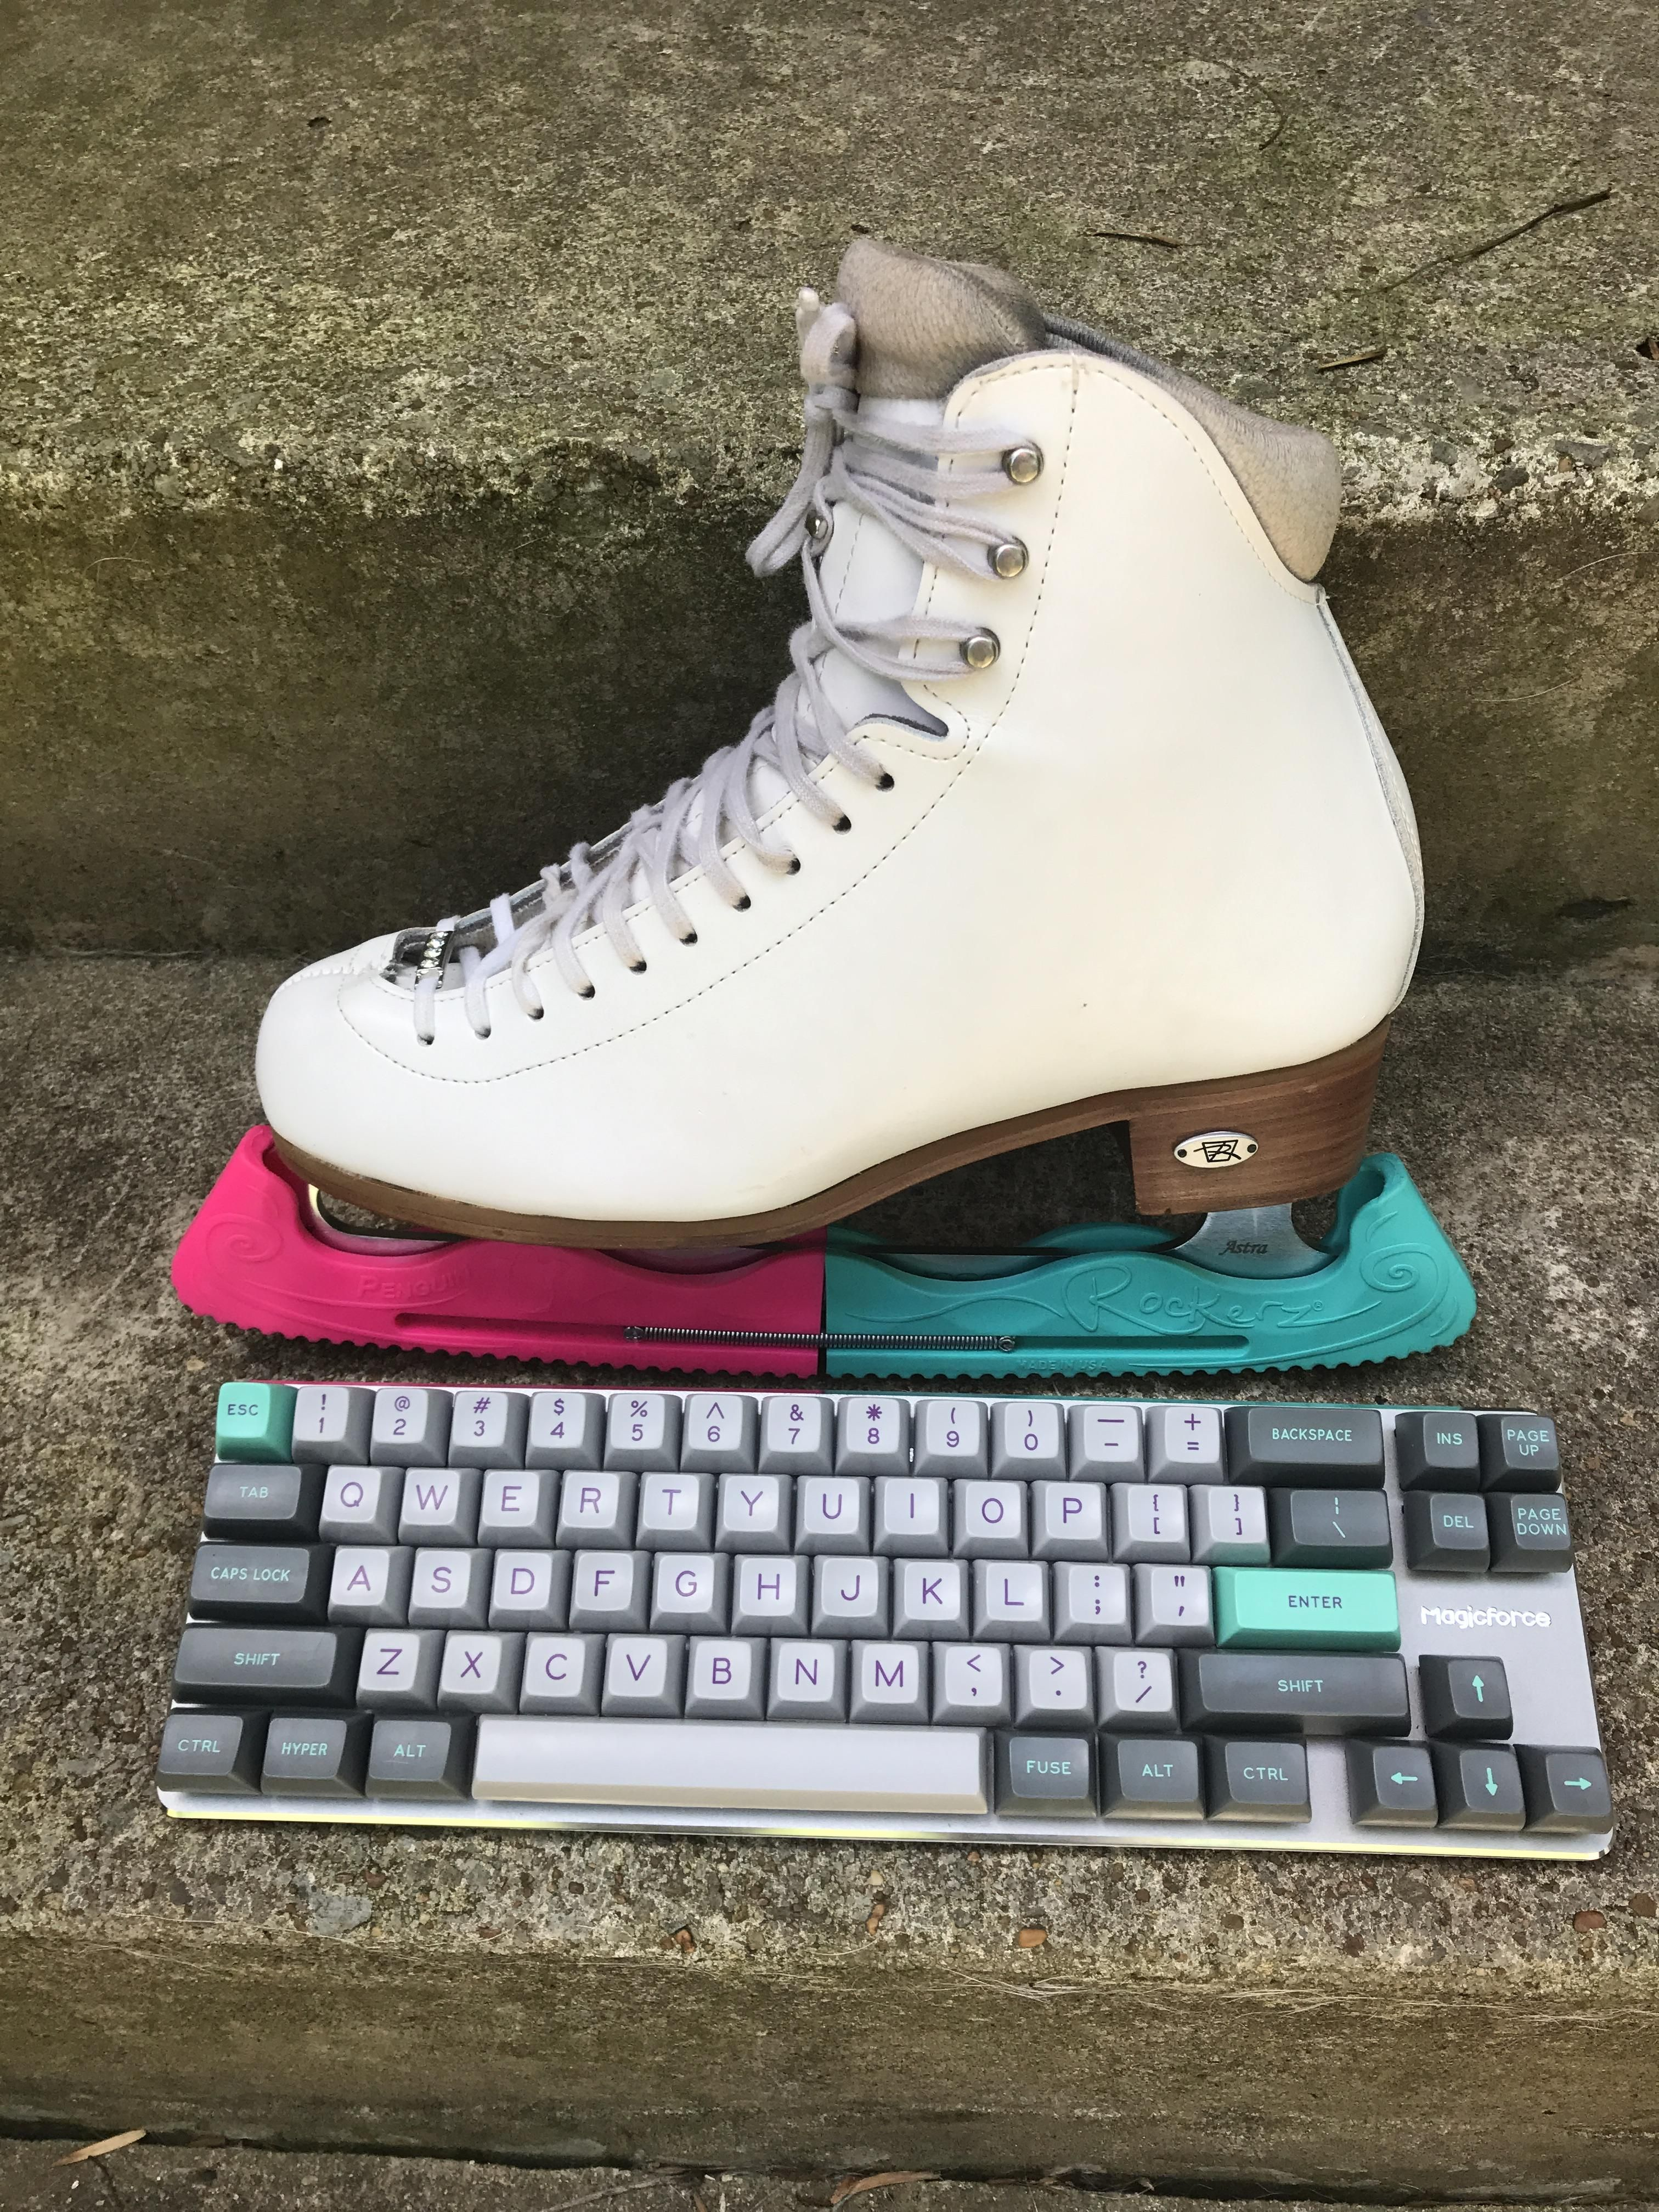 LittleSisterSally [photos] Keyboard with ice skate. Did